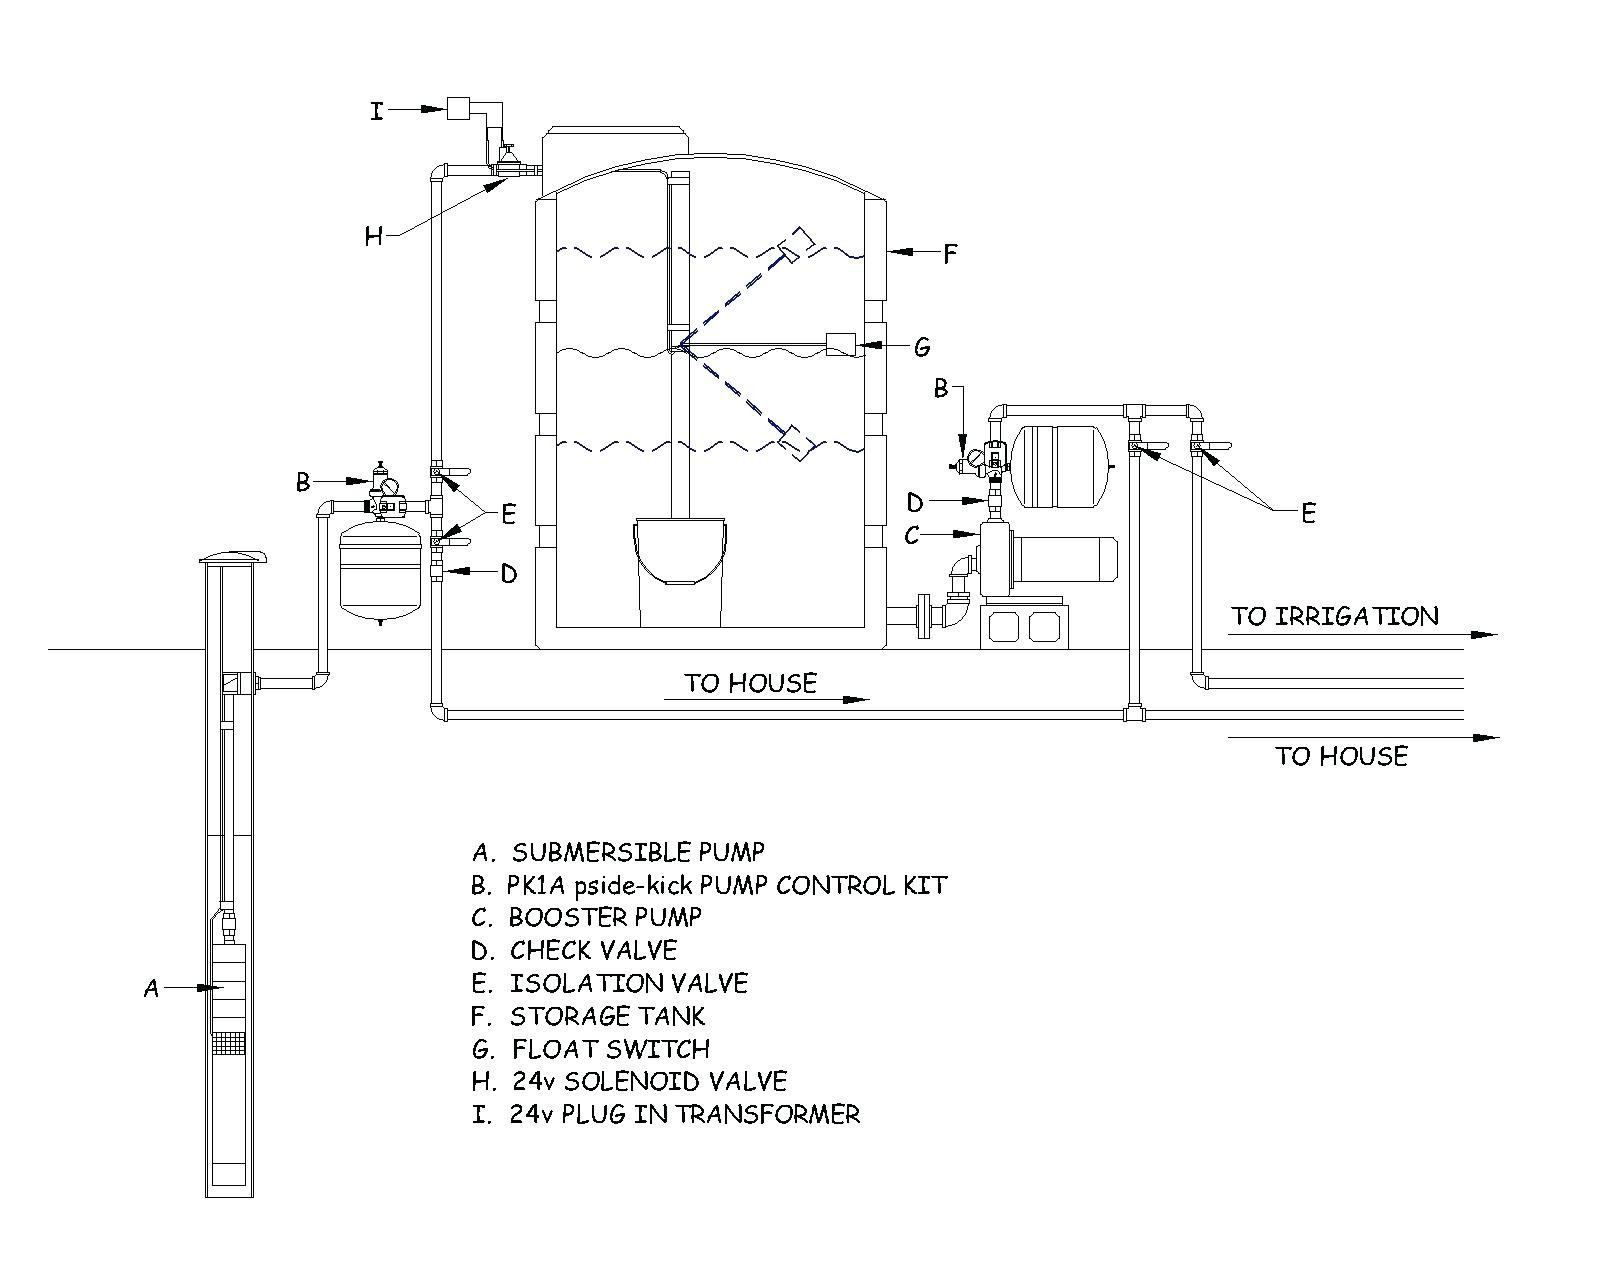 water pump pressure switch wiring diagram wiring diagram image water pump wiring diagram full size of water pressure switch wiring diagram well pump archived wiring diagram category with